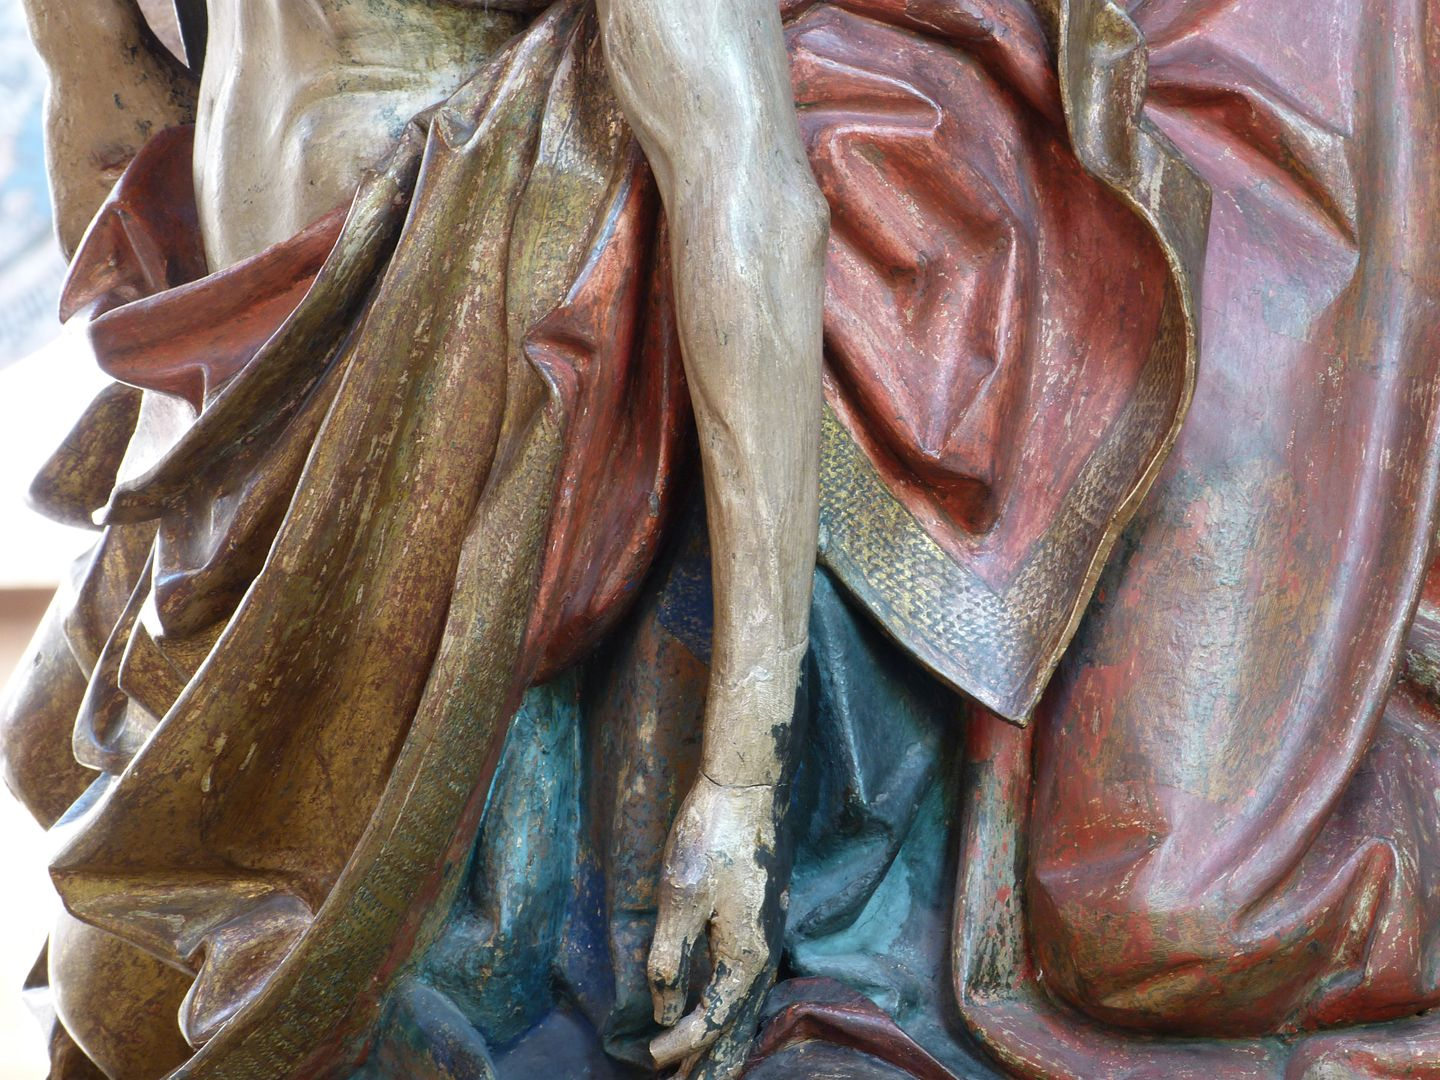 Great Pietà Jesus' body wrapped in Mary's golden cloak, Mary's blue robe and John's red robe.